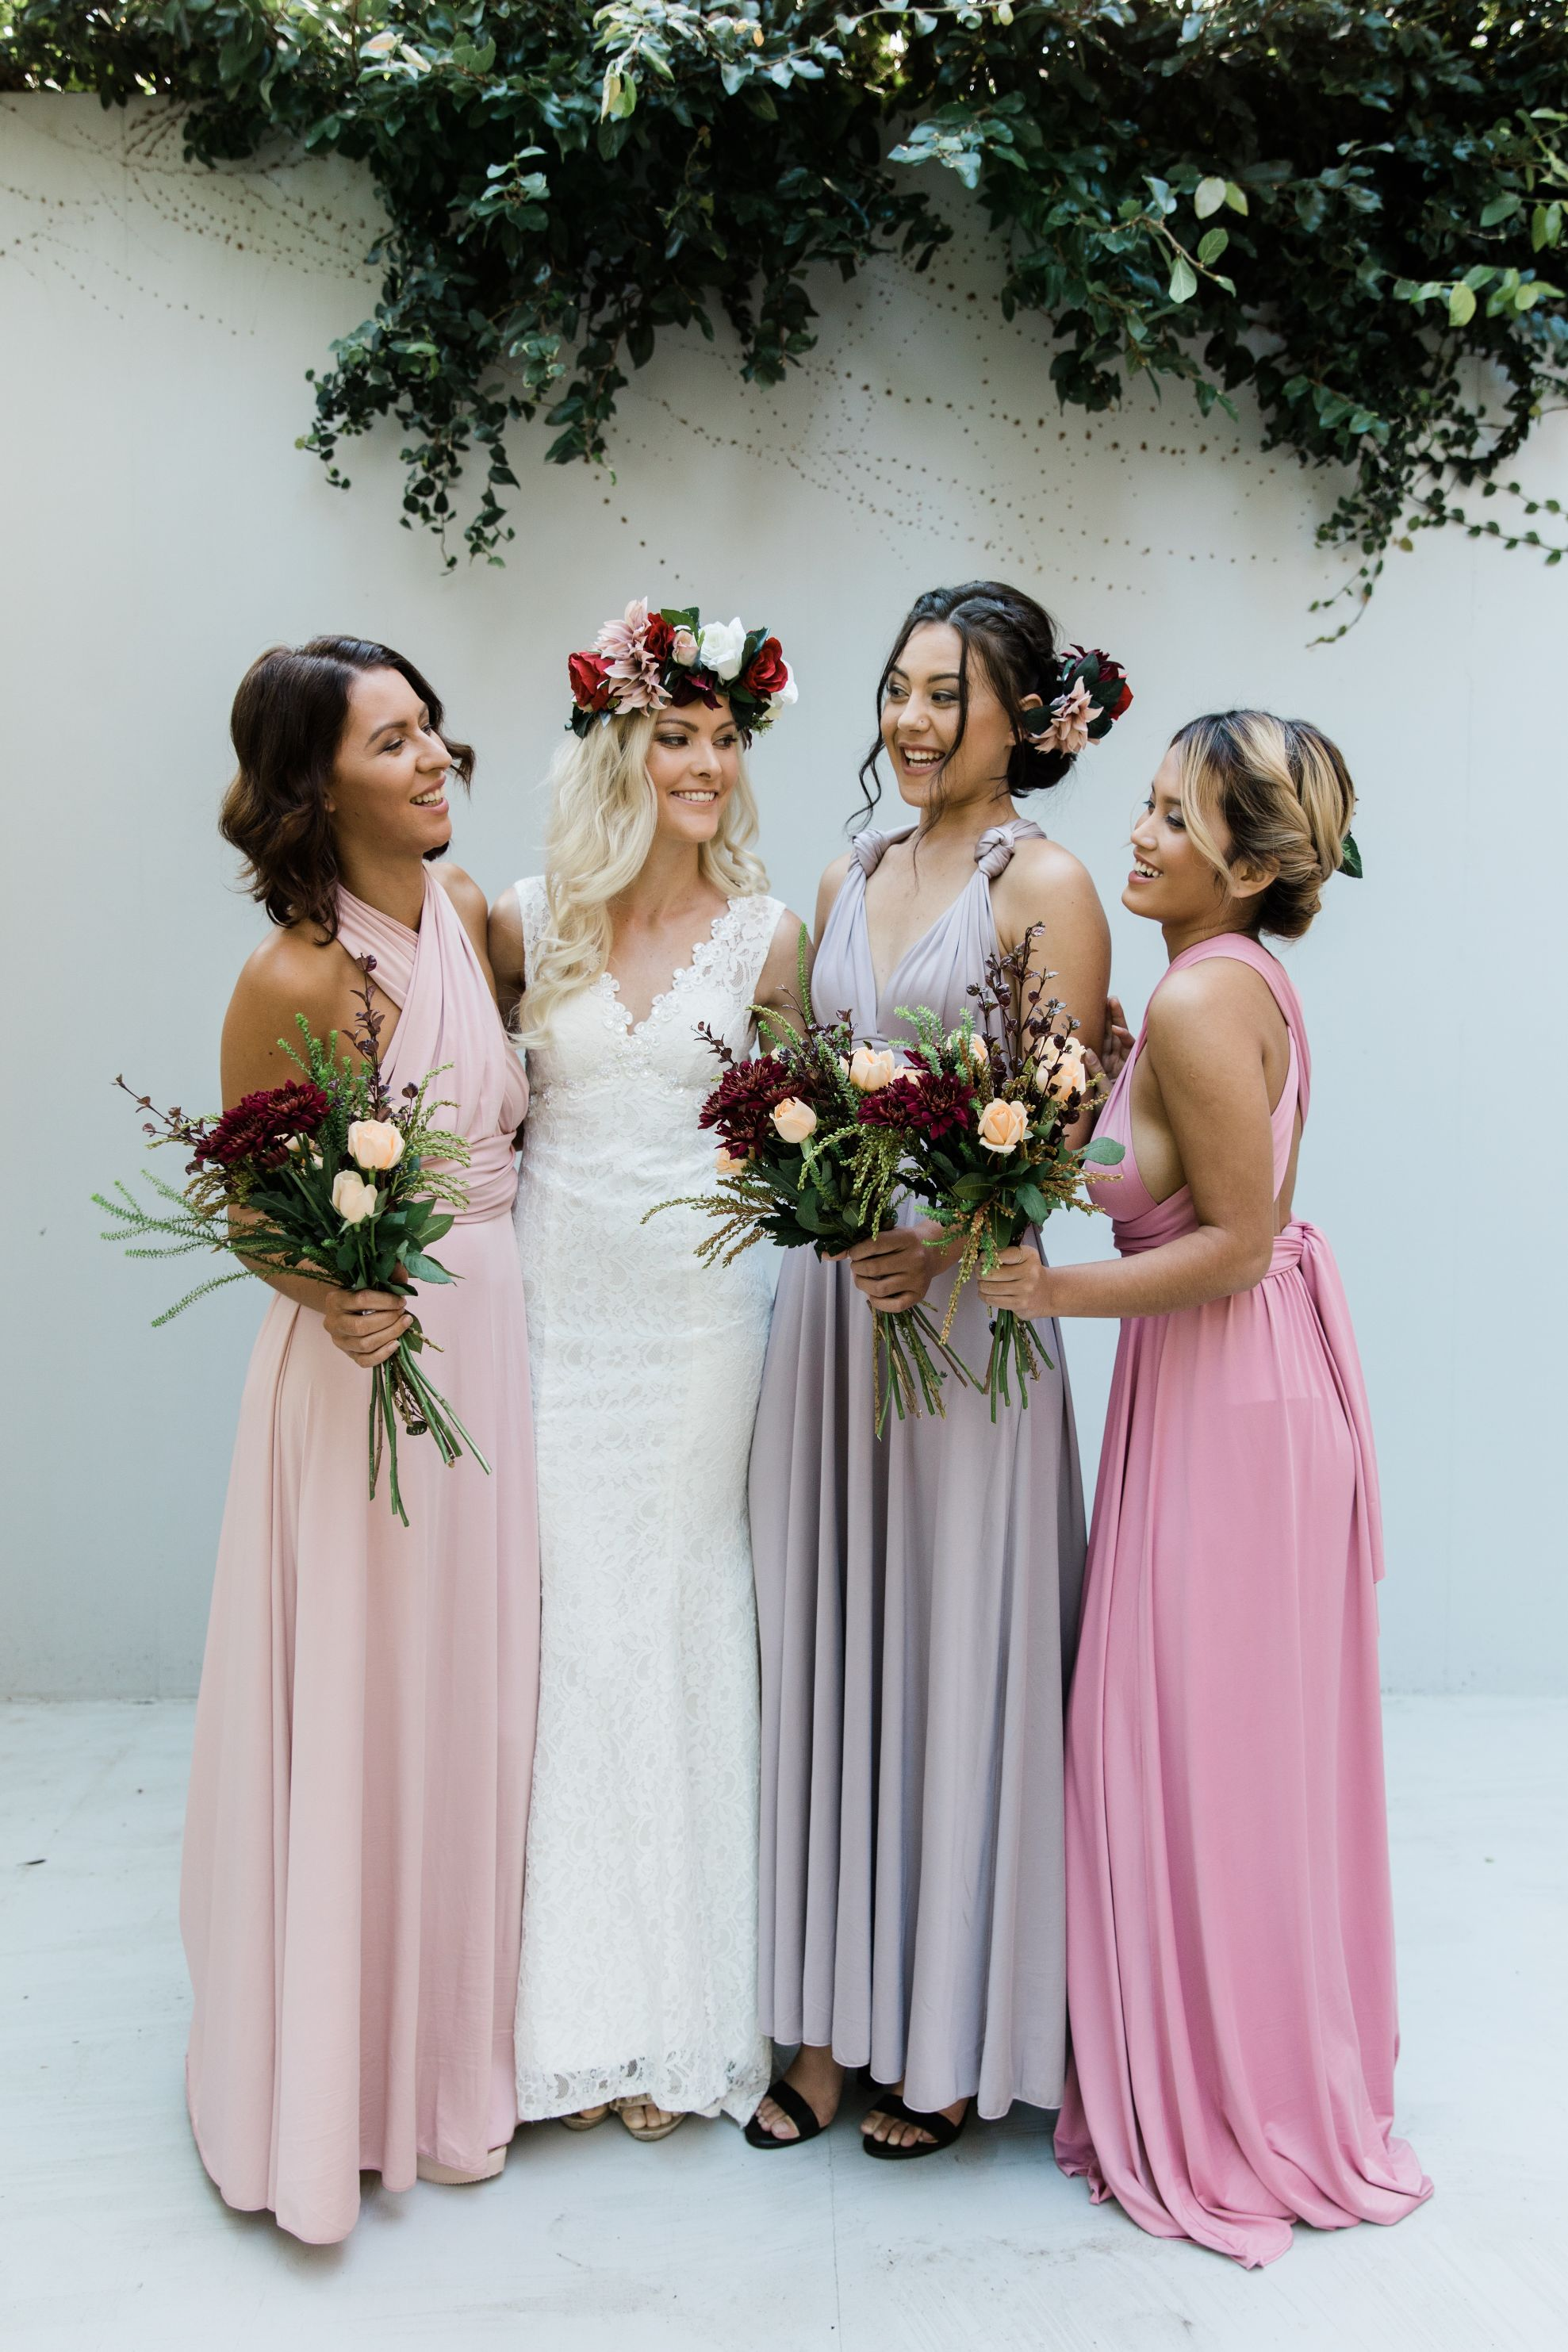 My Name Is Michelle And I Am The Owner Of Baby S Breath Bridesmaids Aka Bbb Would Like To Share With You A Little Bit About Us Why